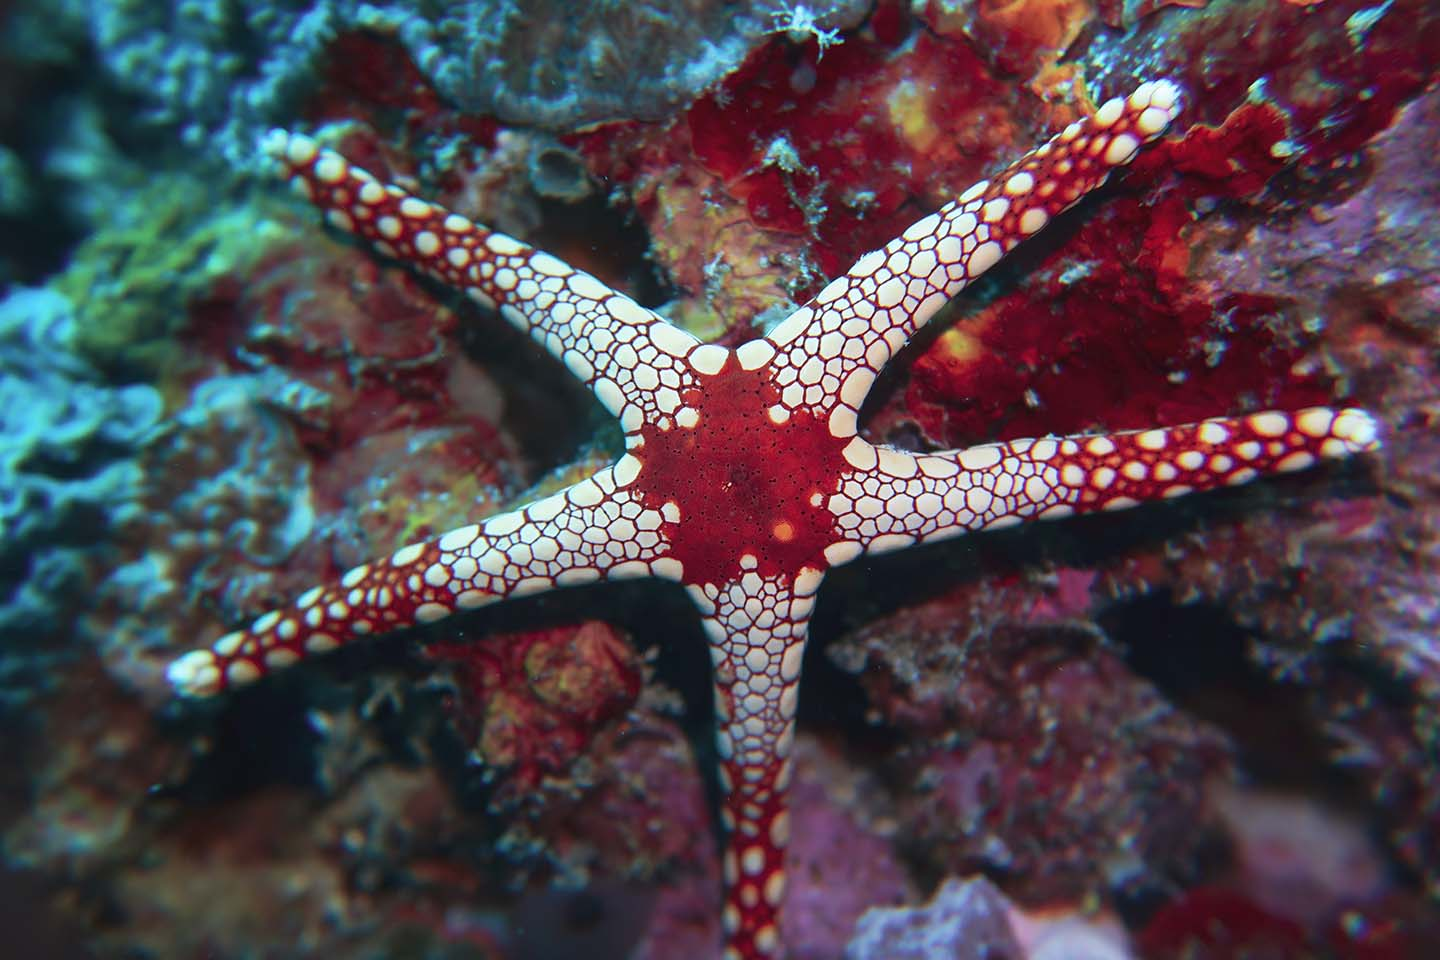 One of the many starfish species you can find in Anilao